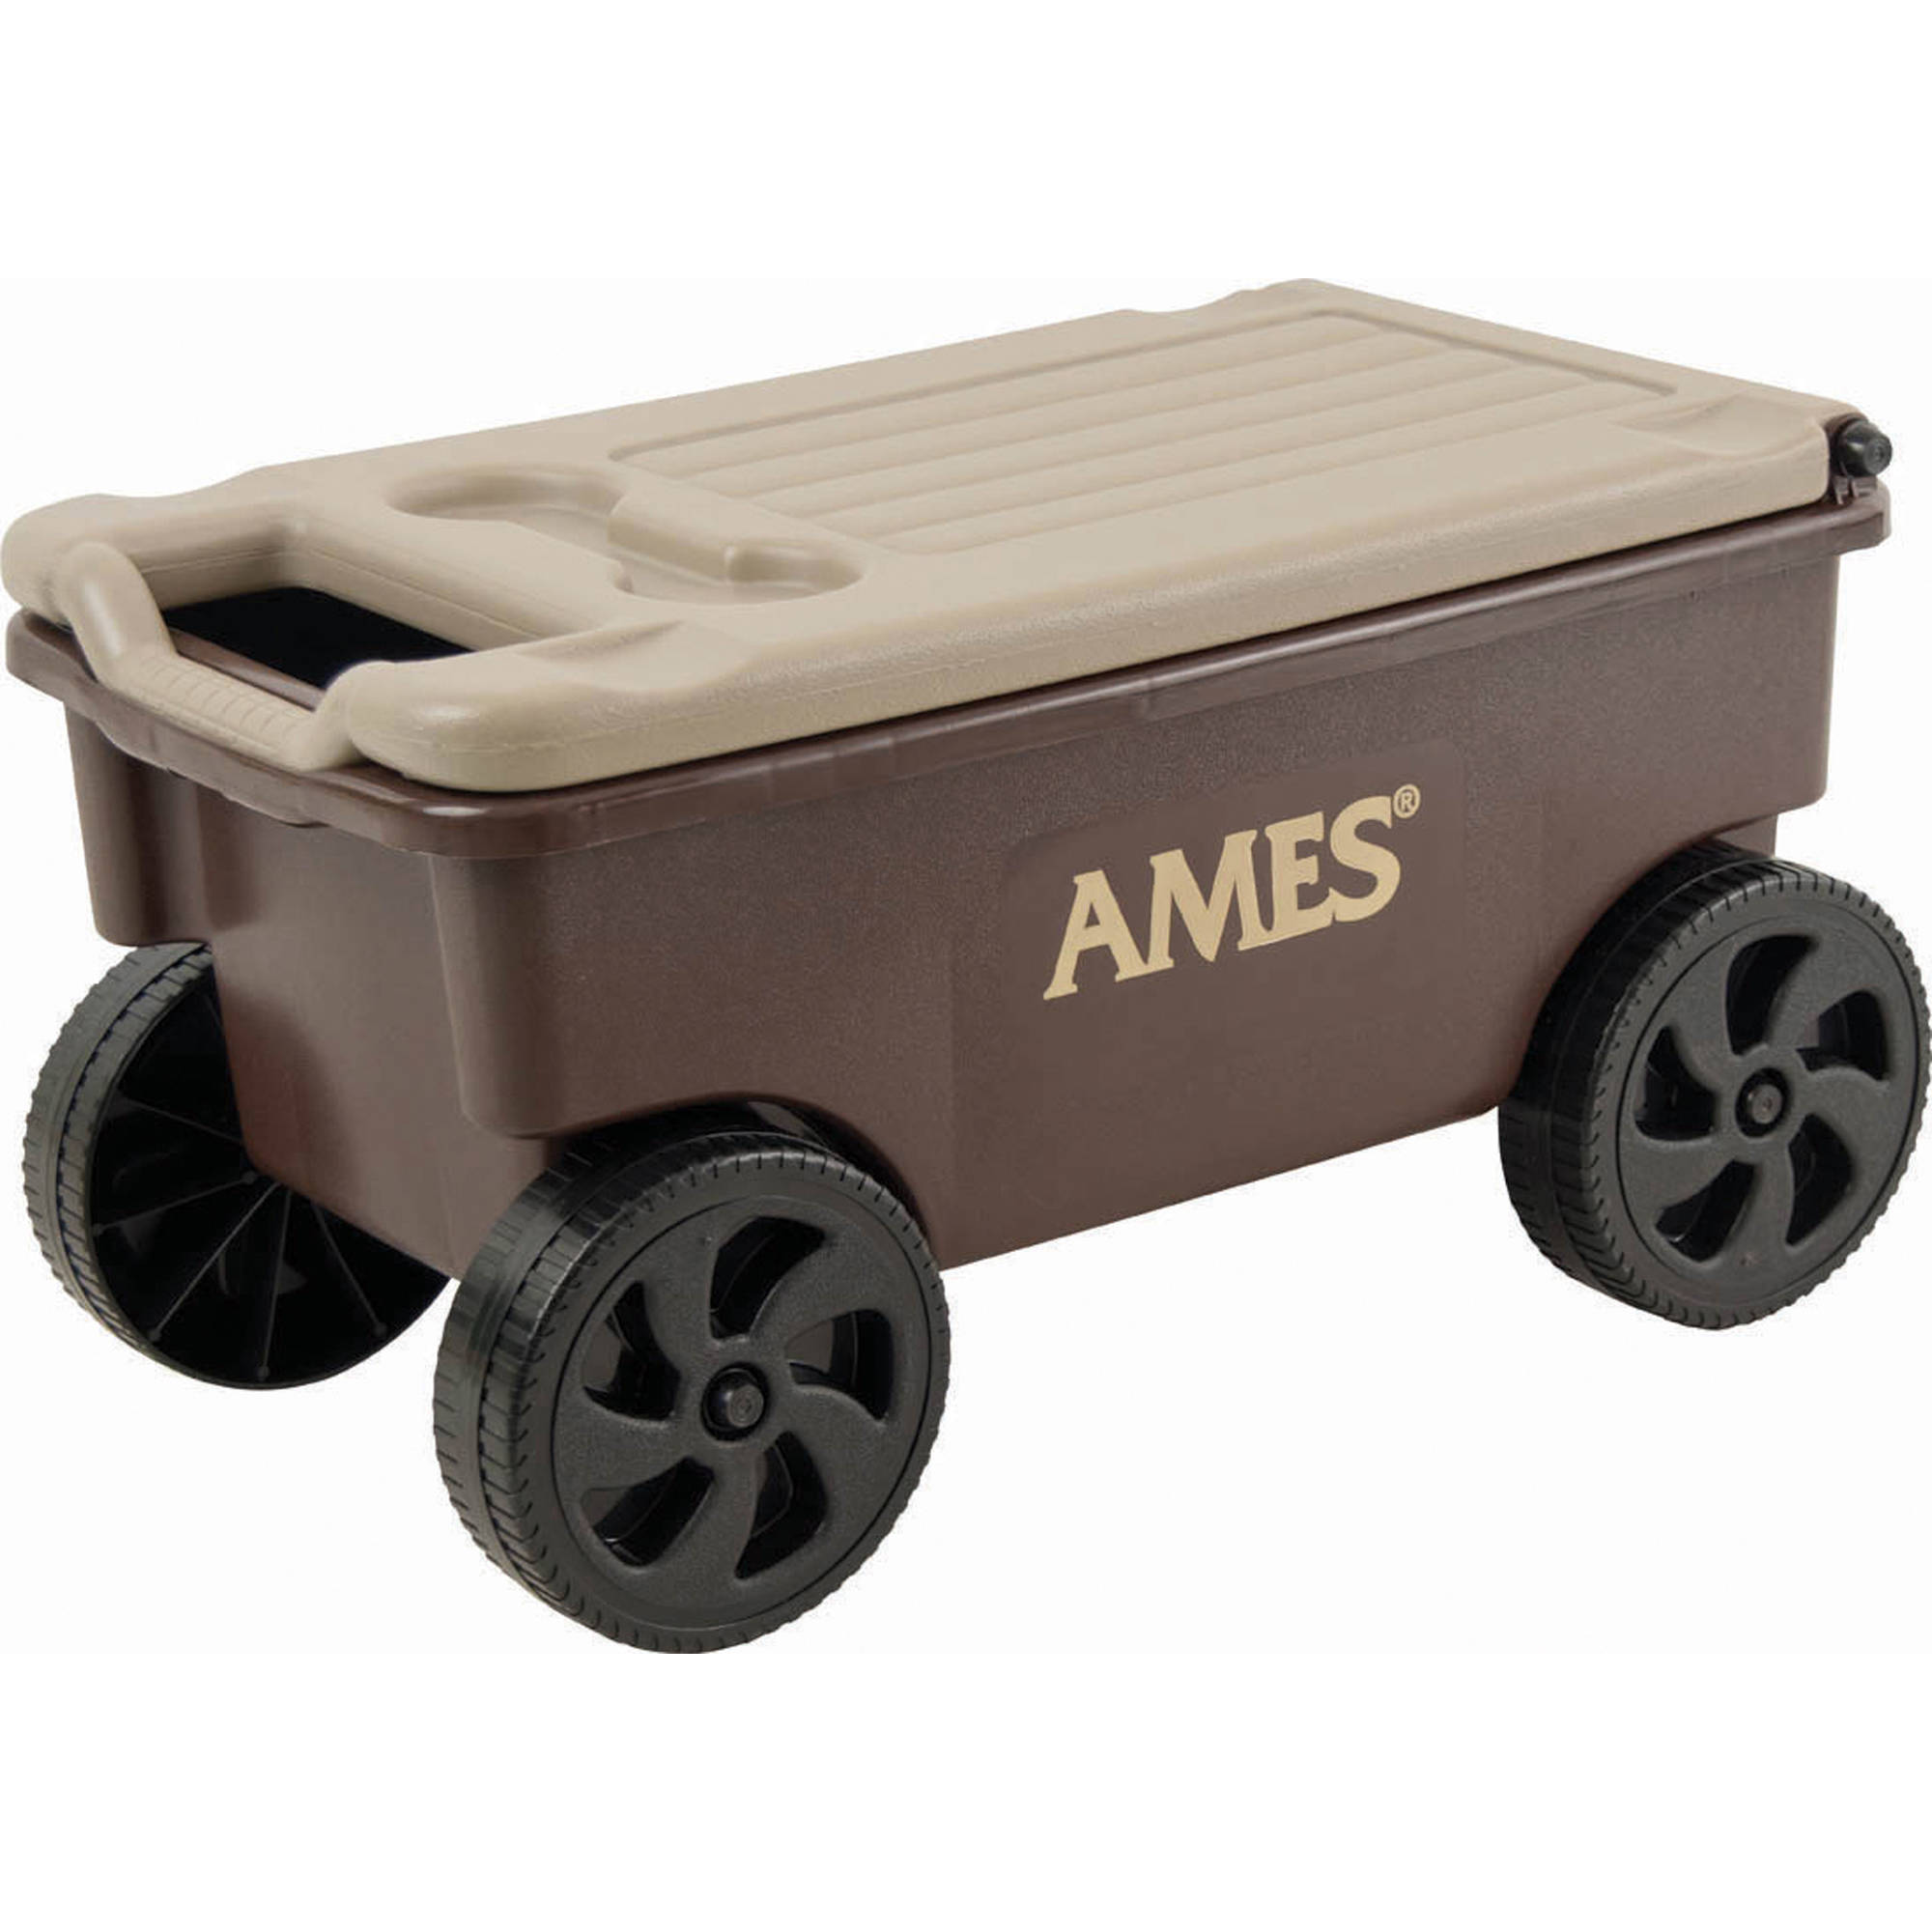 Ames 1123047100 2 cu ft Lawn Buddy Walmartcom